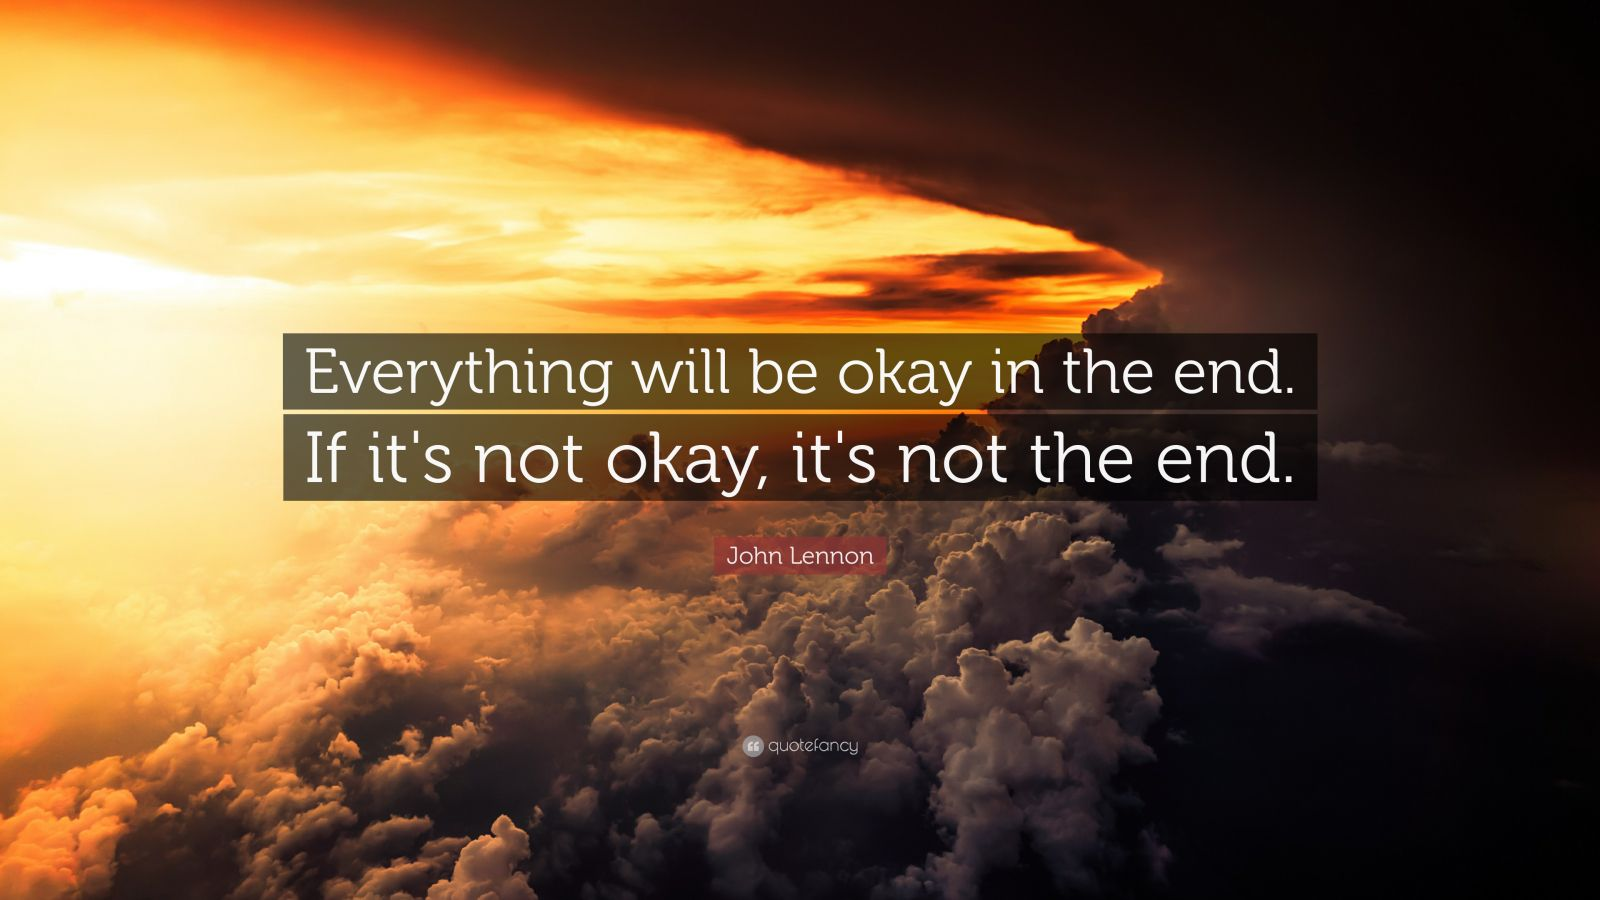 Beautiful Life Wallpapers With Quotes John Lennon Quote Everything Will Be Okay In The End If